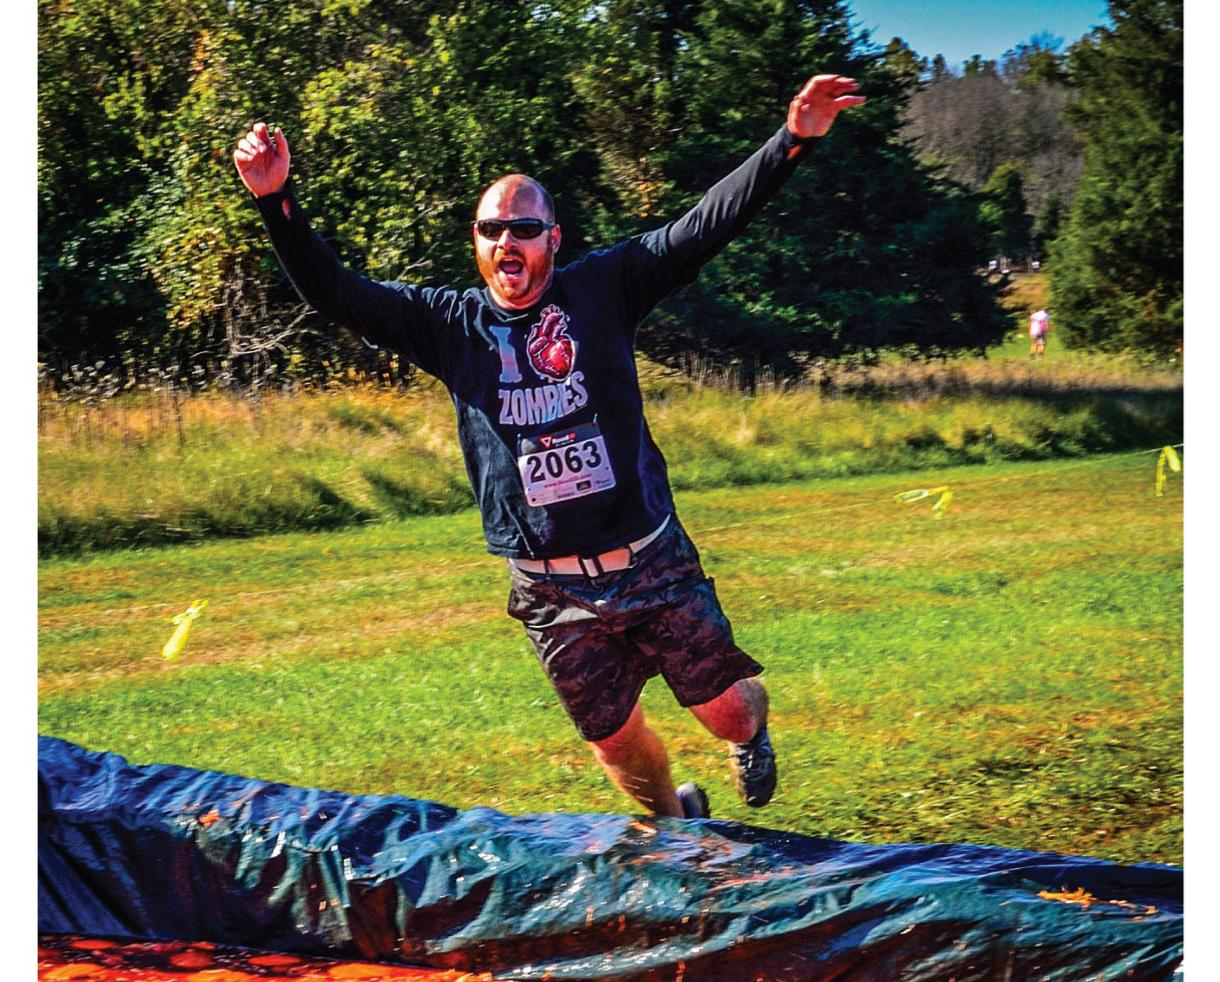 $29+ for Admission to the Blood and Guts Run for Ages 5+ at Bull Run Regional Park - October 14th (36% Off)